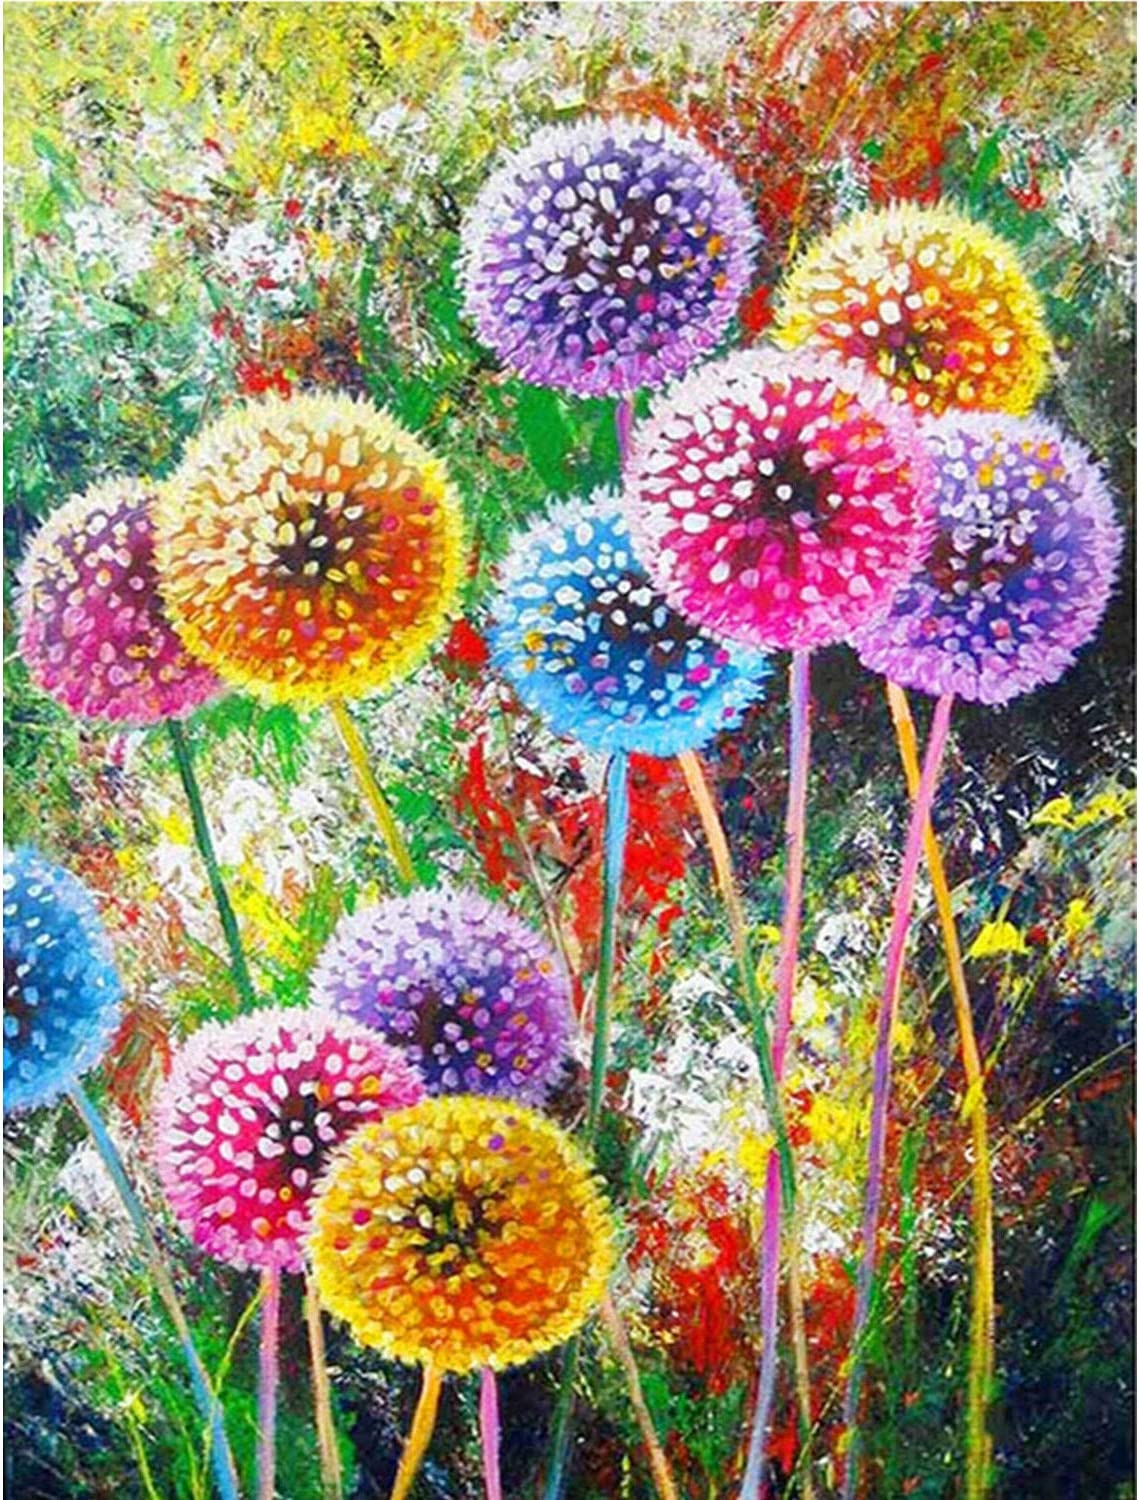 DIY 5D Diamond Painting Kits for Adult Kids Daisy Full Drill Crystal Painting by Number Kits,Embroidery Pictures Arts Craft for Home Wall Decor Gift 2pack,11.8X15.7inch